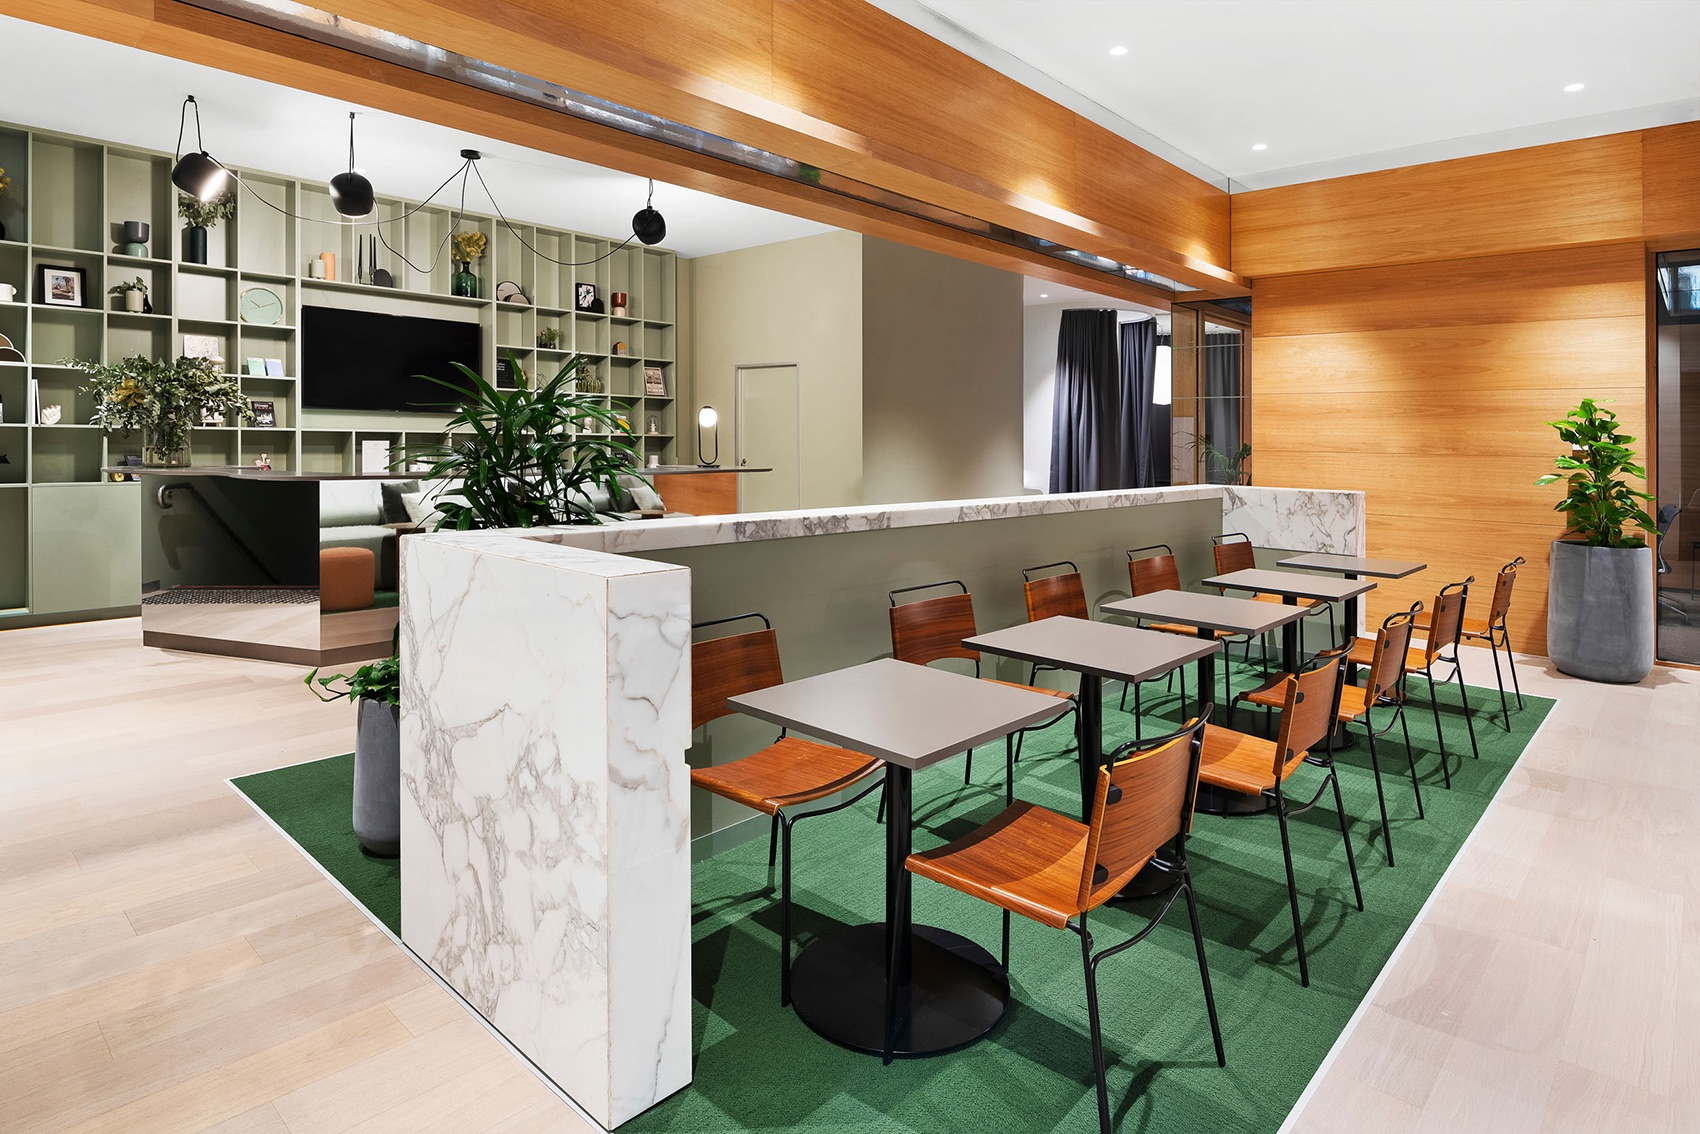 A Tour of The Commons' Melbourne Coworking Space